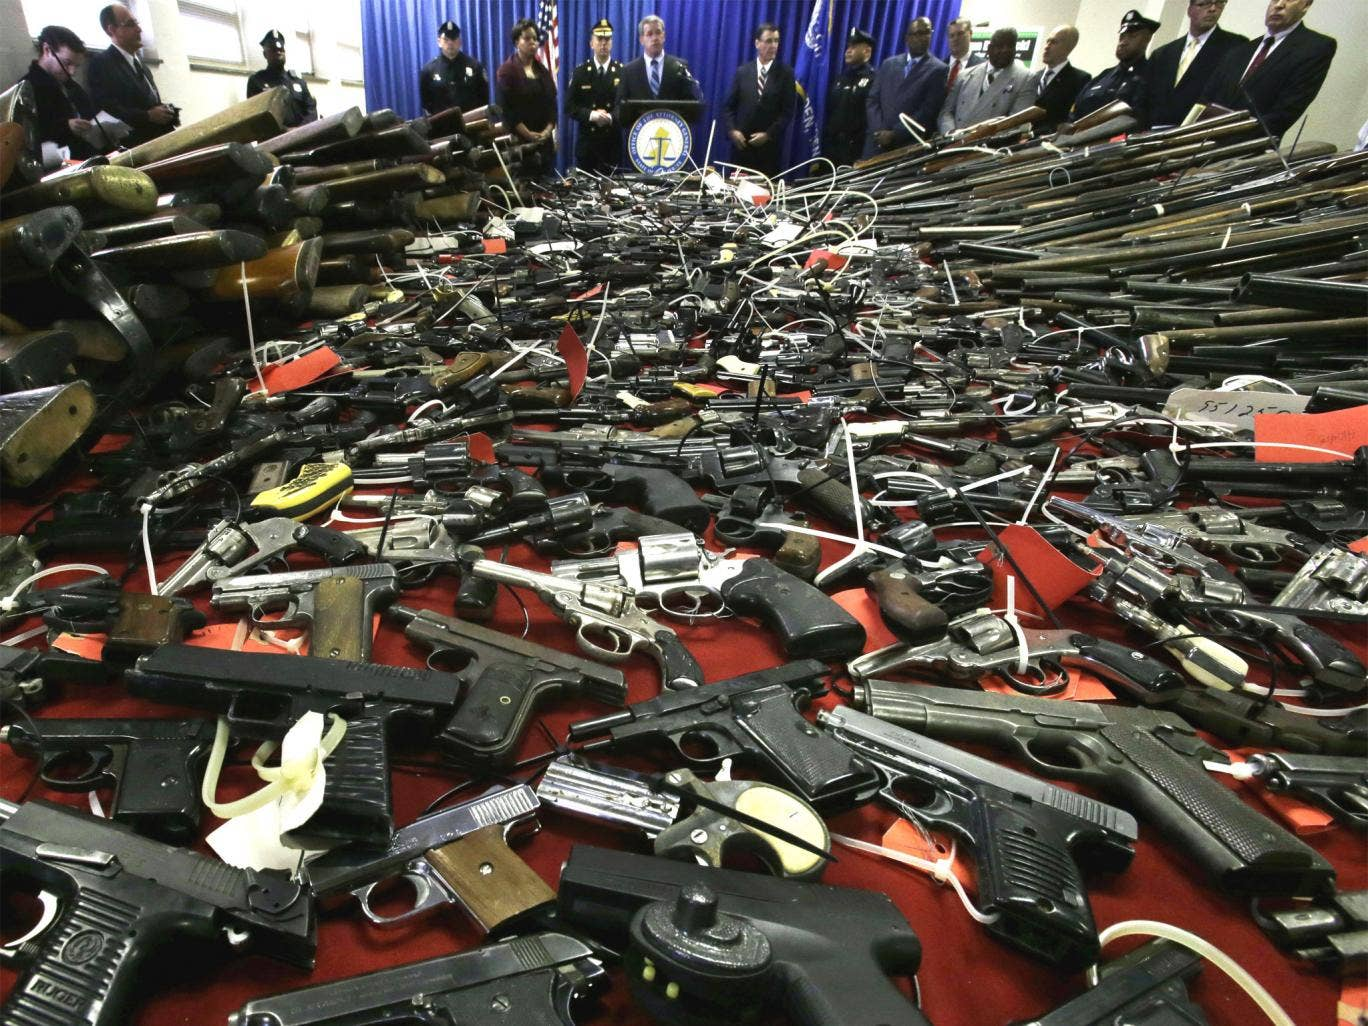 Gun buy-backs, such as this one launched in New Jersey last weekend, have taken thousands of weapons off the streets